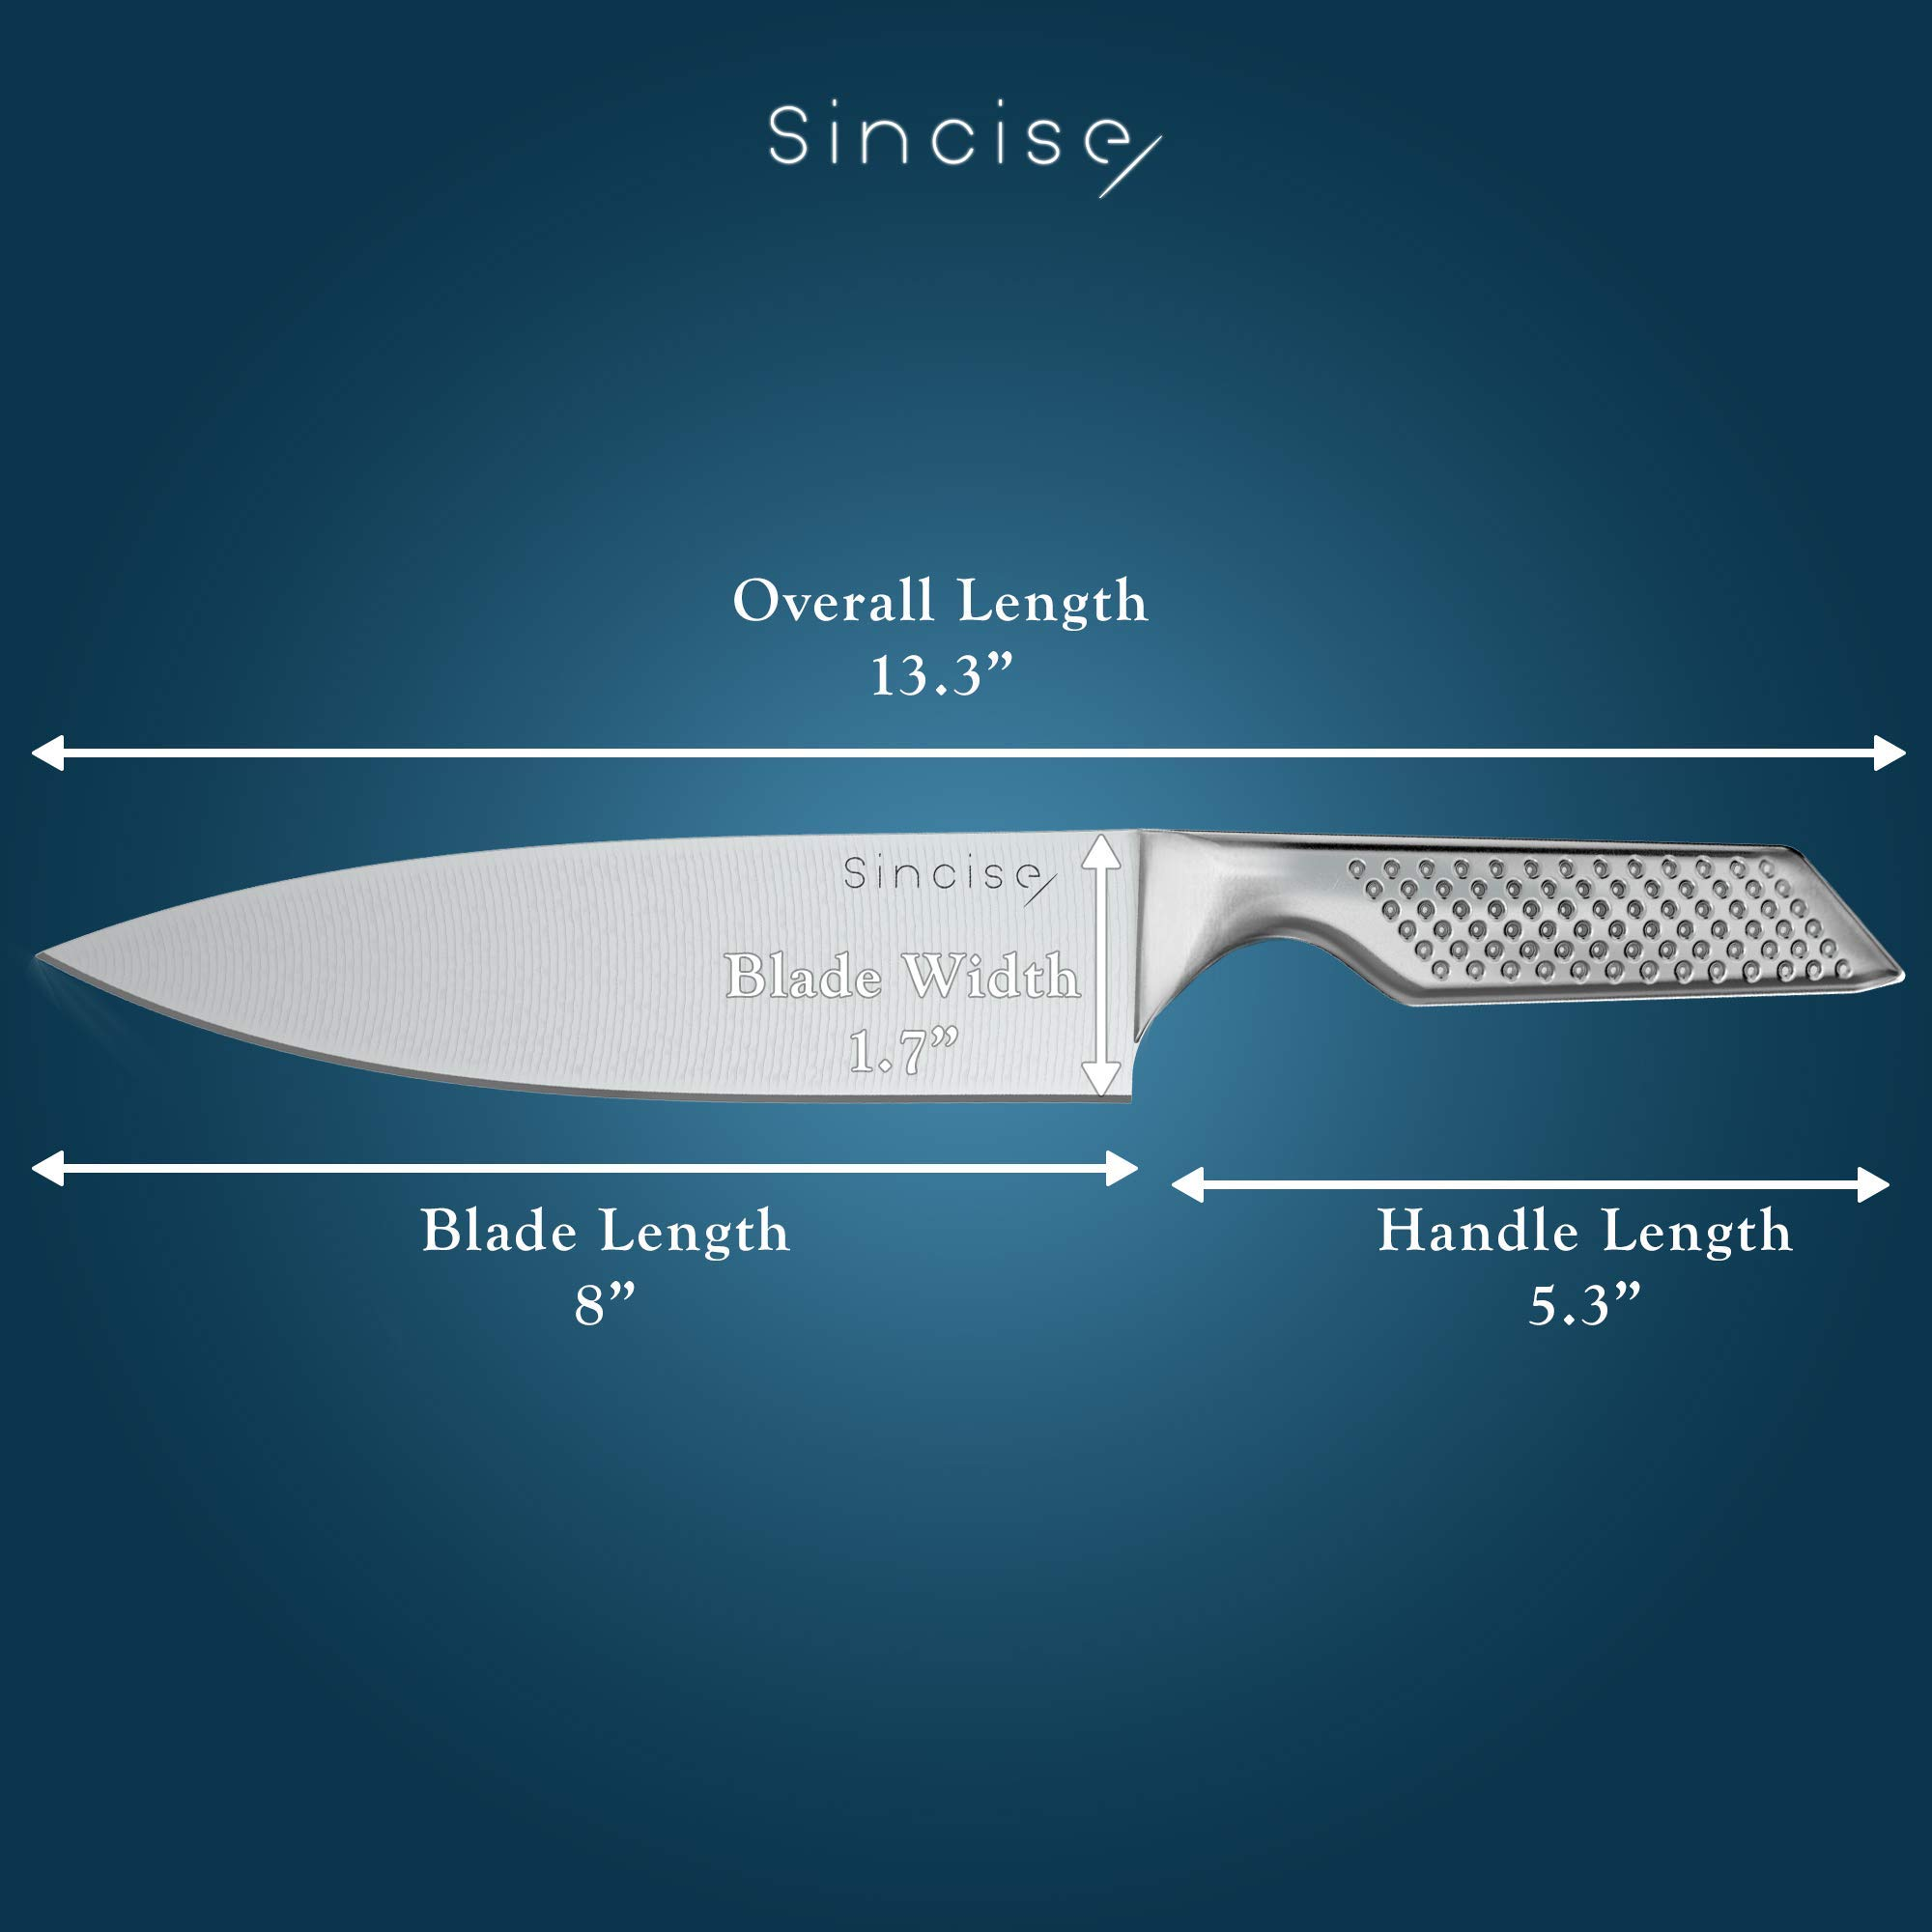 Professional 8 Inch Japanese Chef Knife | Razor Sharp Blade Made of High Carbon German Steel | Ergonomic One-Piece Chef's Knife| Perfect in Kitchen for Cutlery and Vegetable - by SINCISE (8 inch) by Sincise (Image #8)